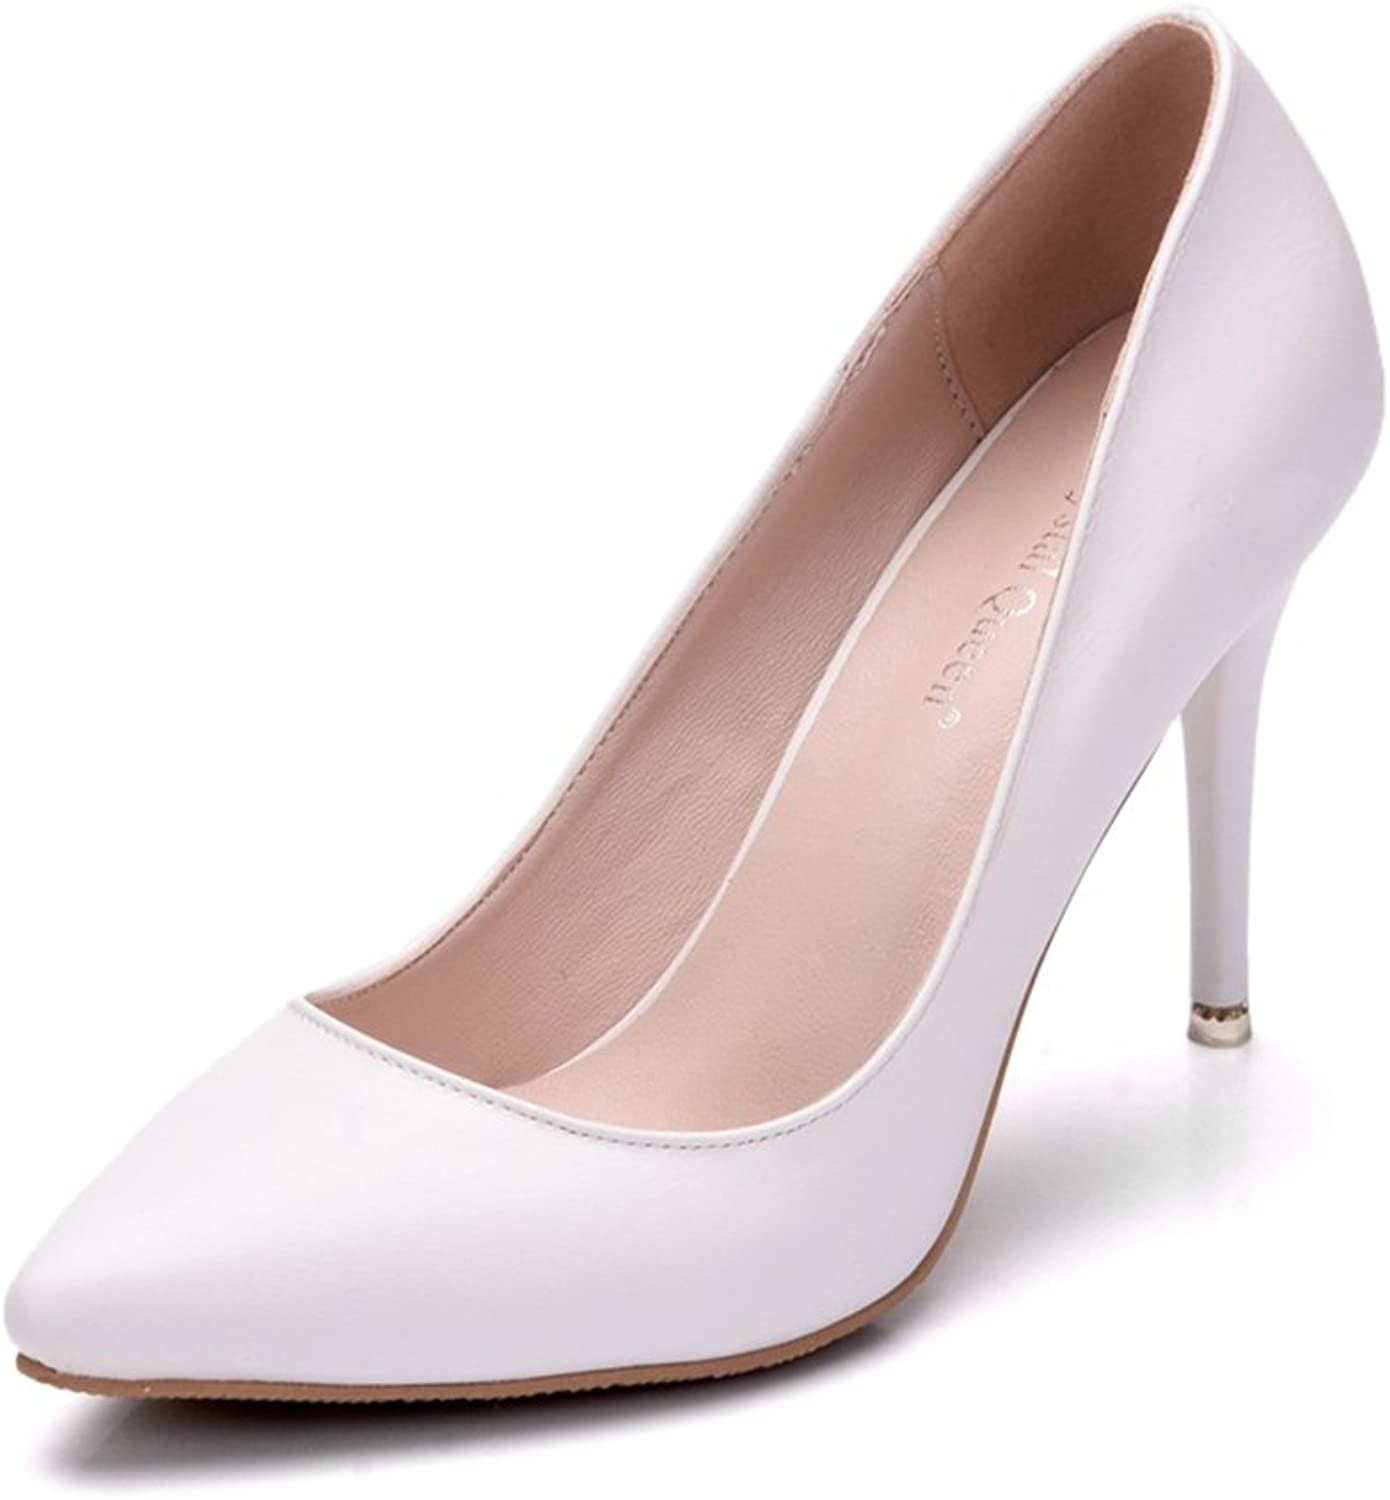 TUYPSHOES Women's Comfortable Elegant High Cushioned Office Low Heels Pointy Close Toe Stiletto Pumps shoes